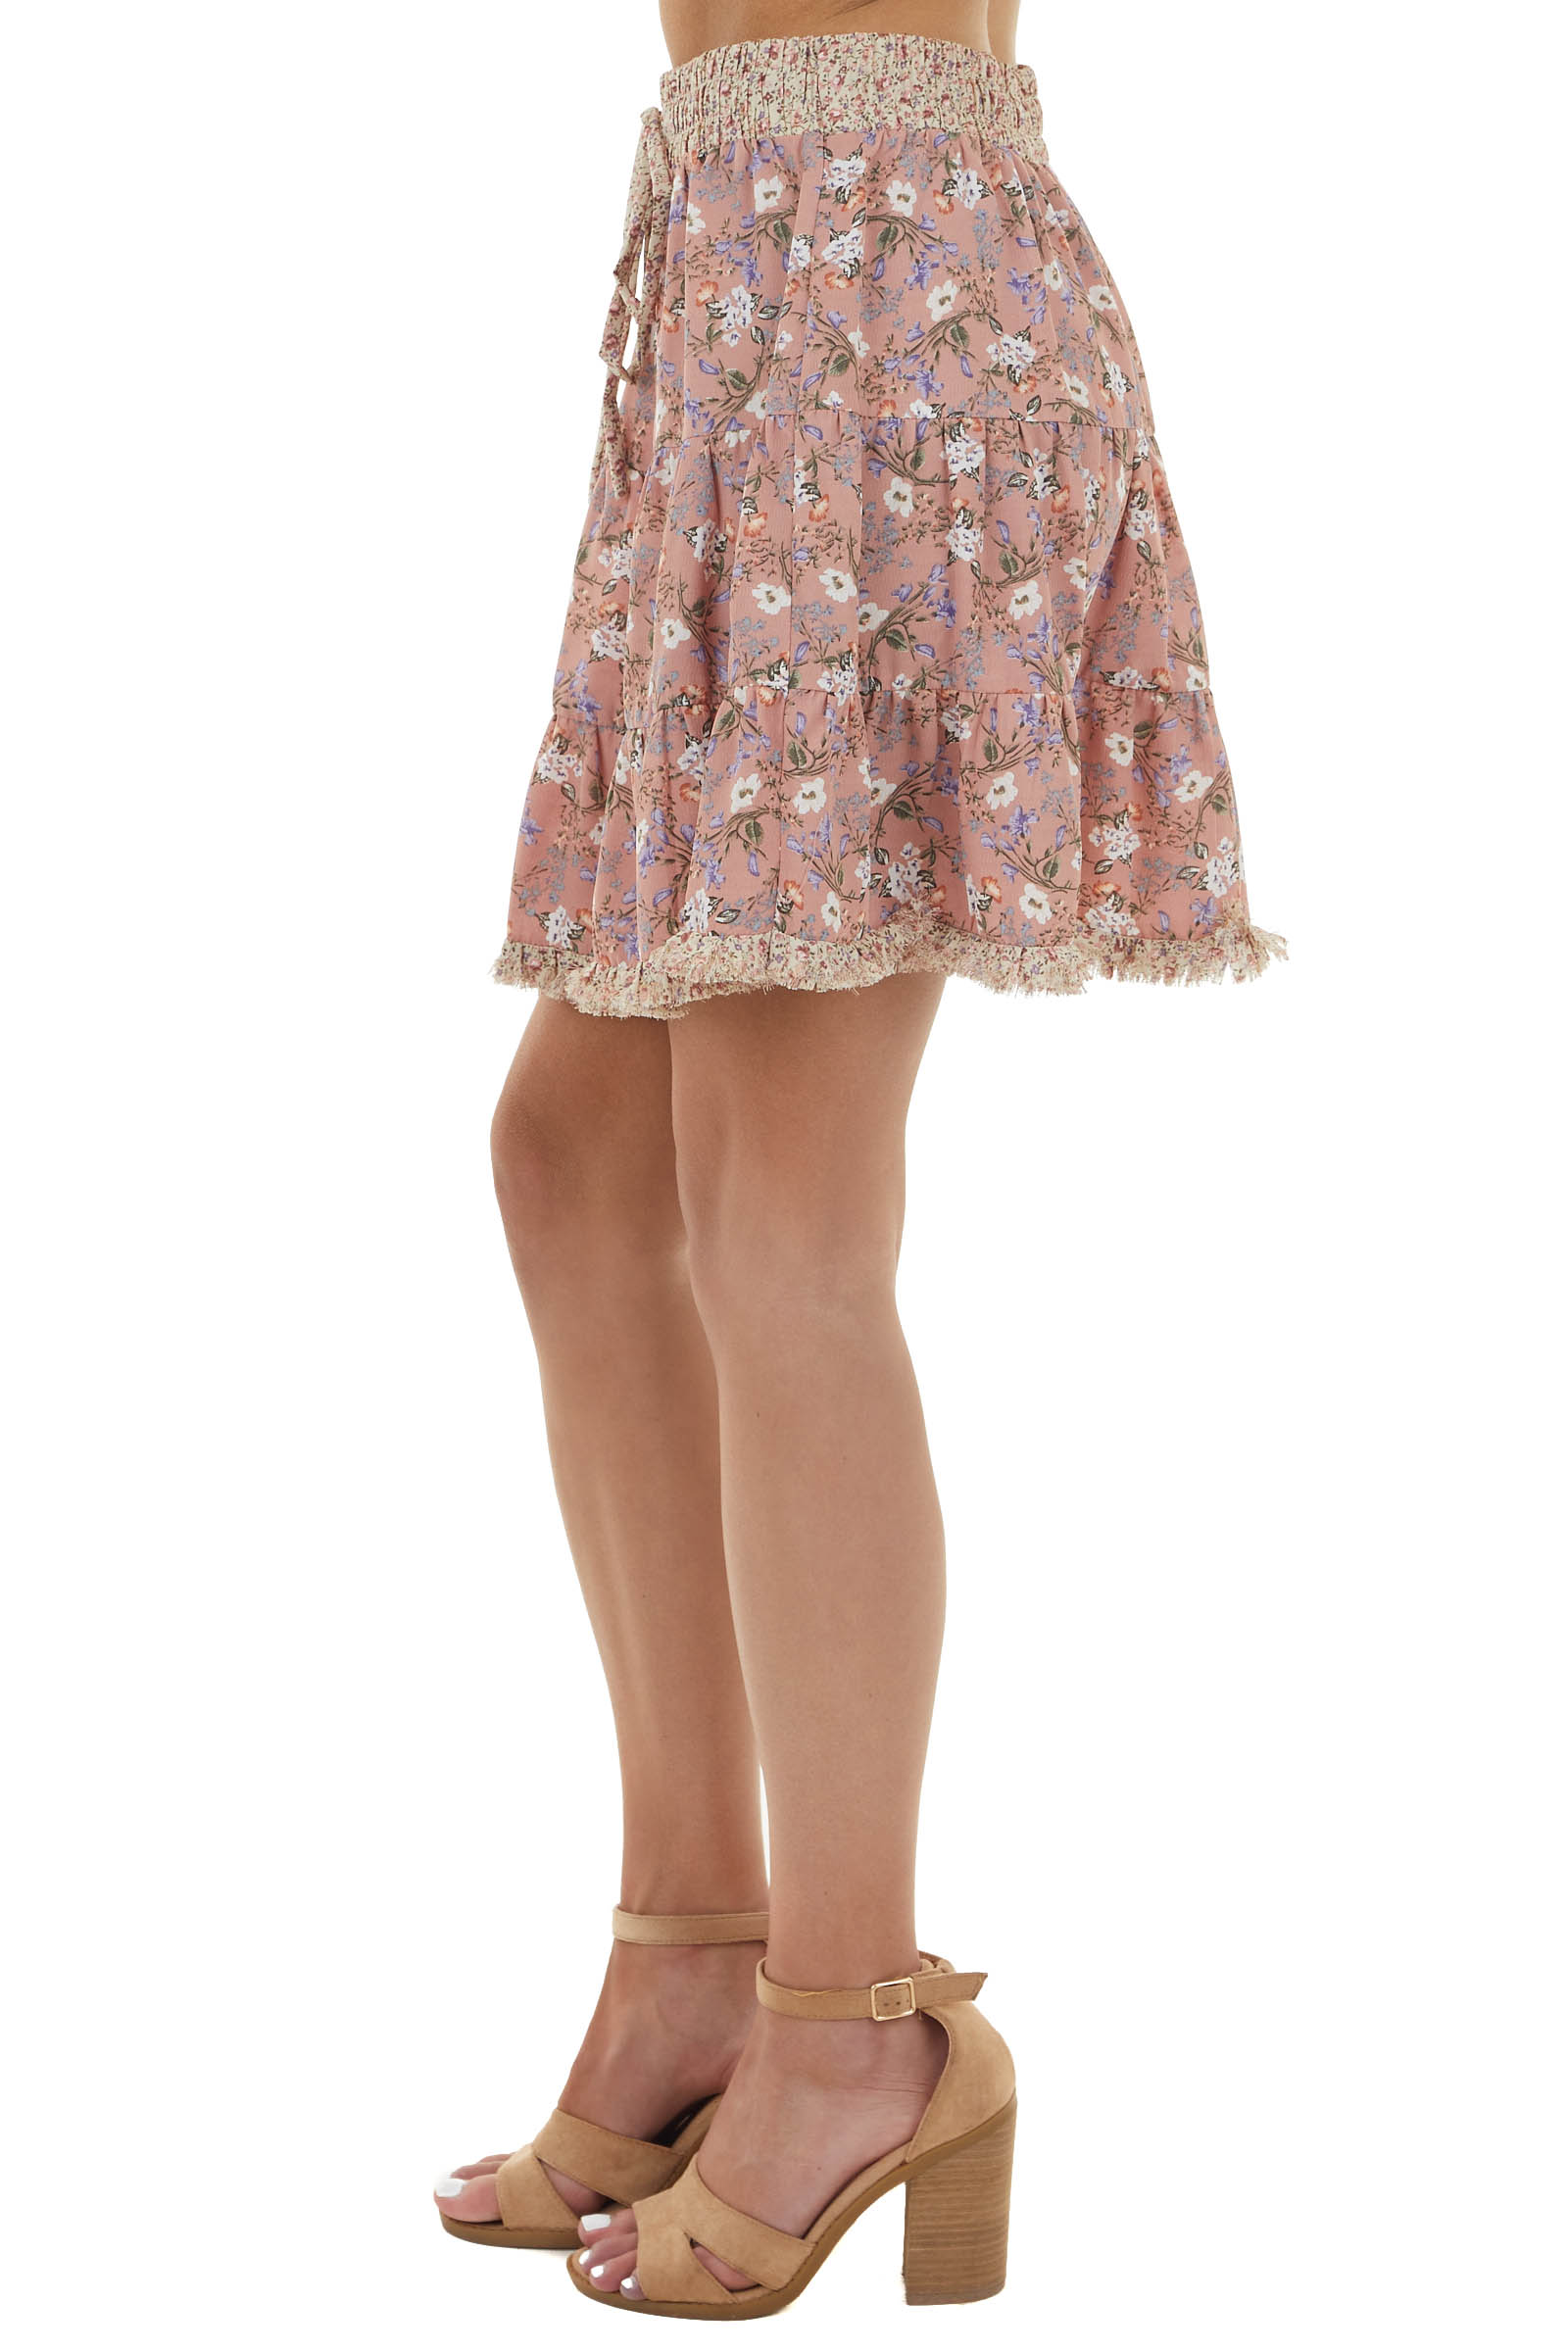 Dusty Rose Floral Print Short Tiered Skirt with Frayed Hem